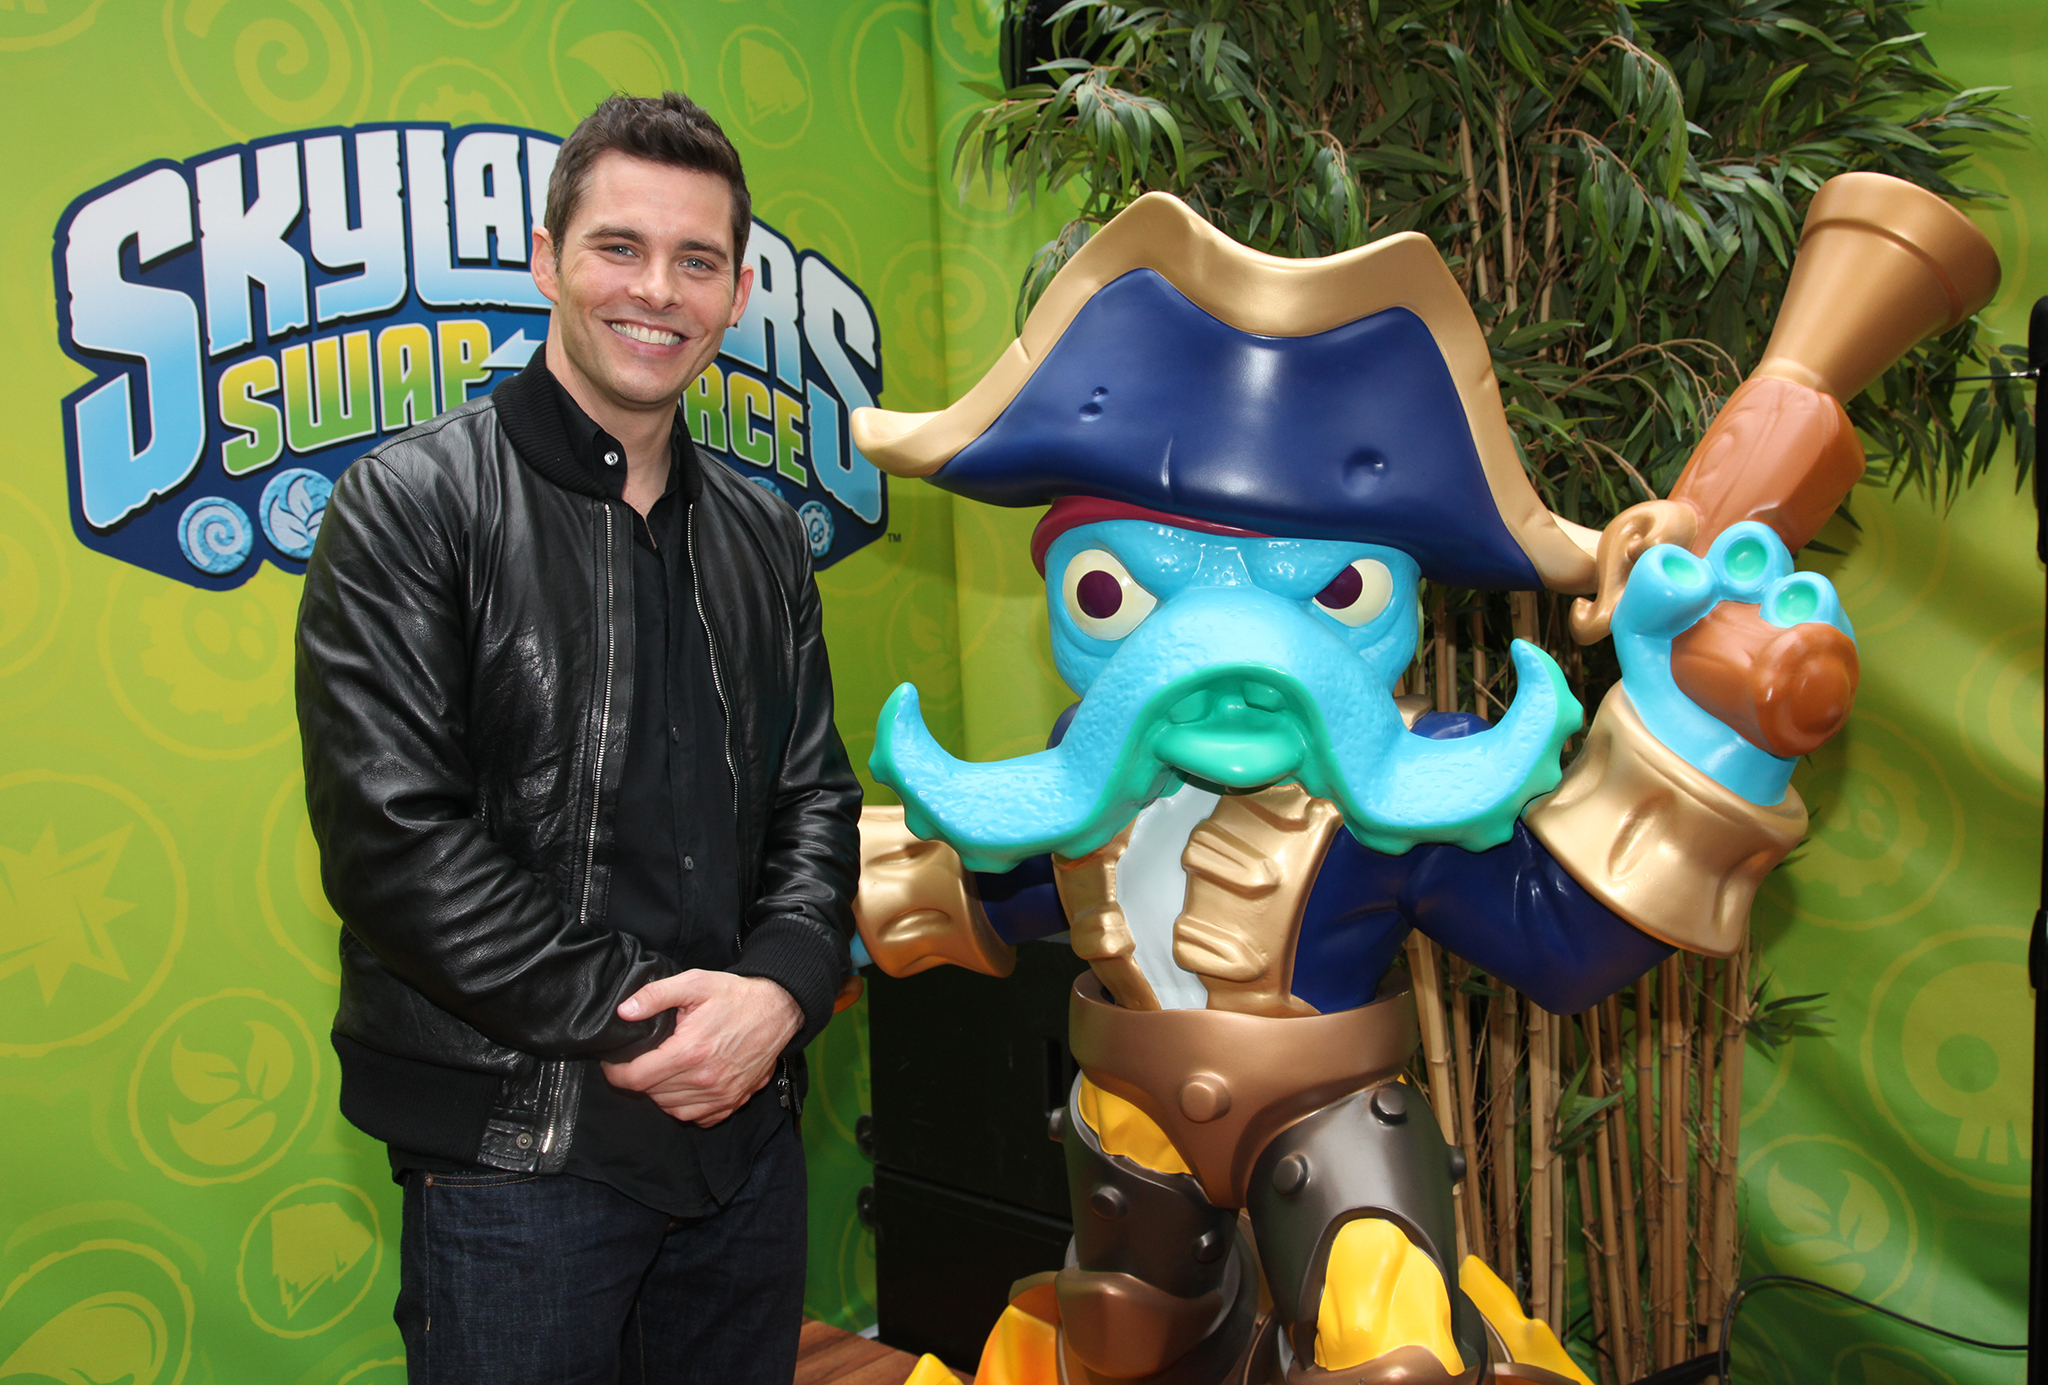 Marsden bonds with Skylander at the launch event for Activision's Skylander SWAP Force (Getty Images)